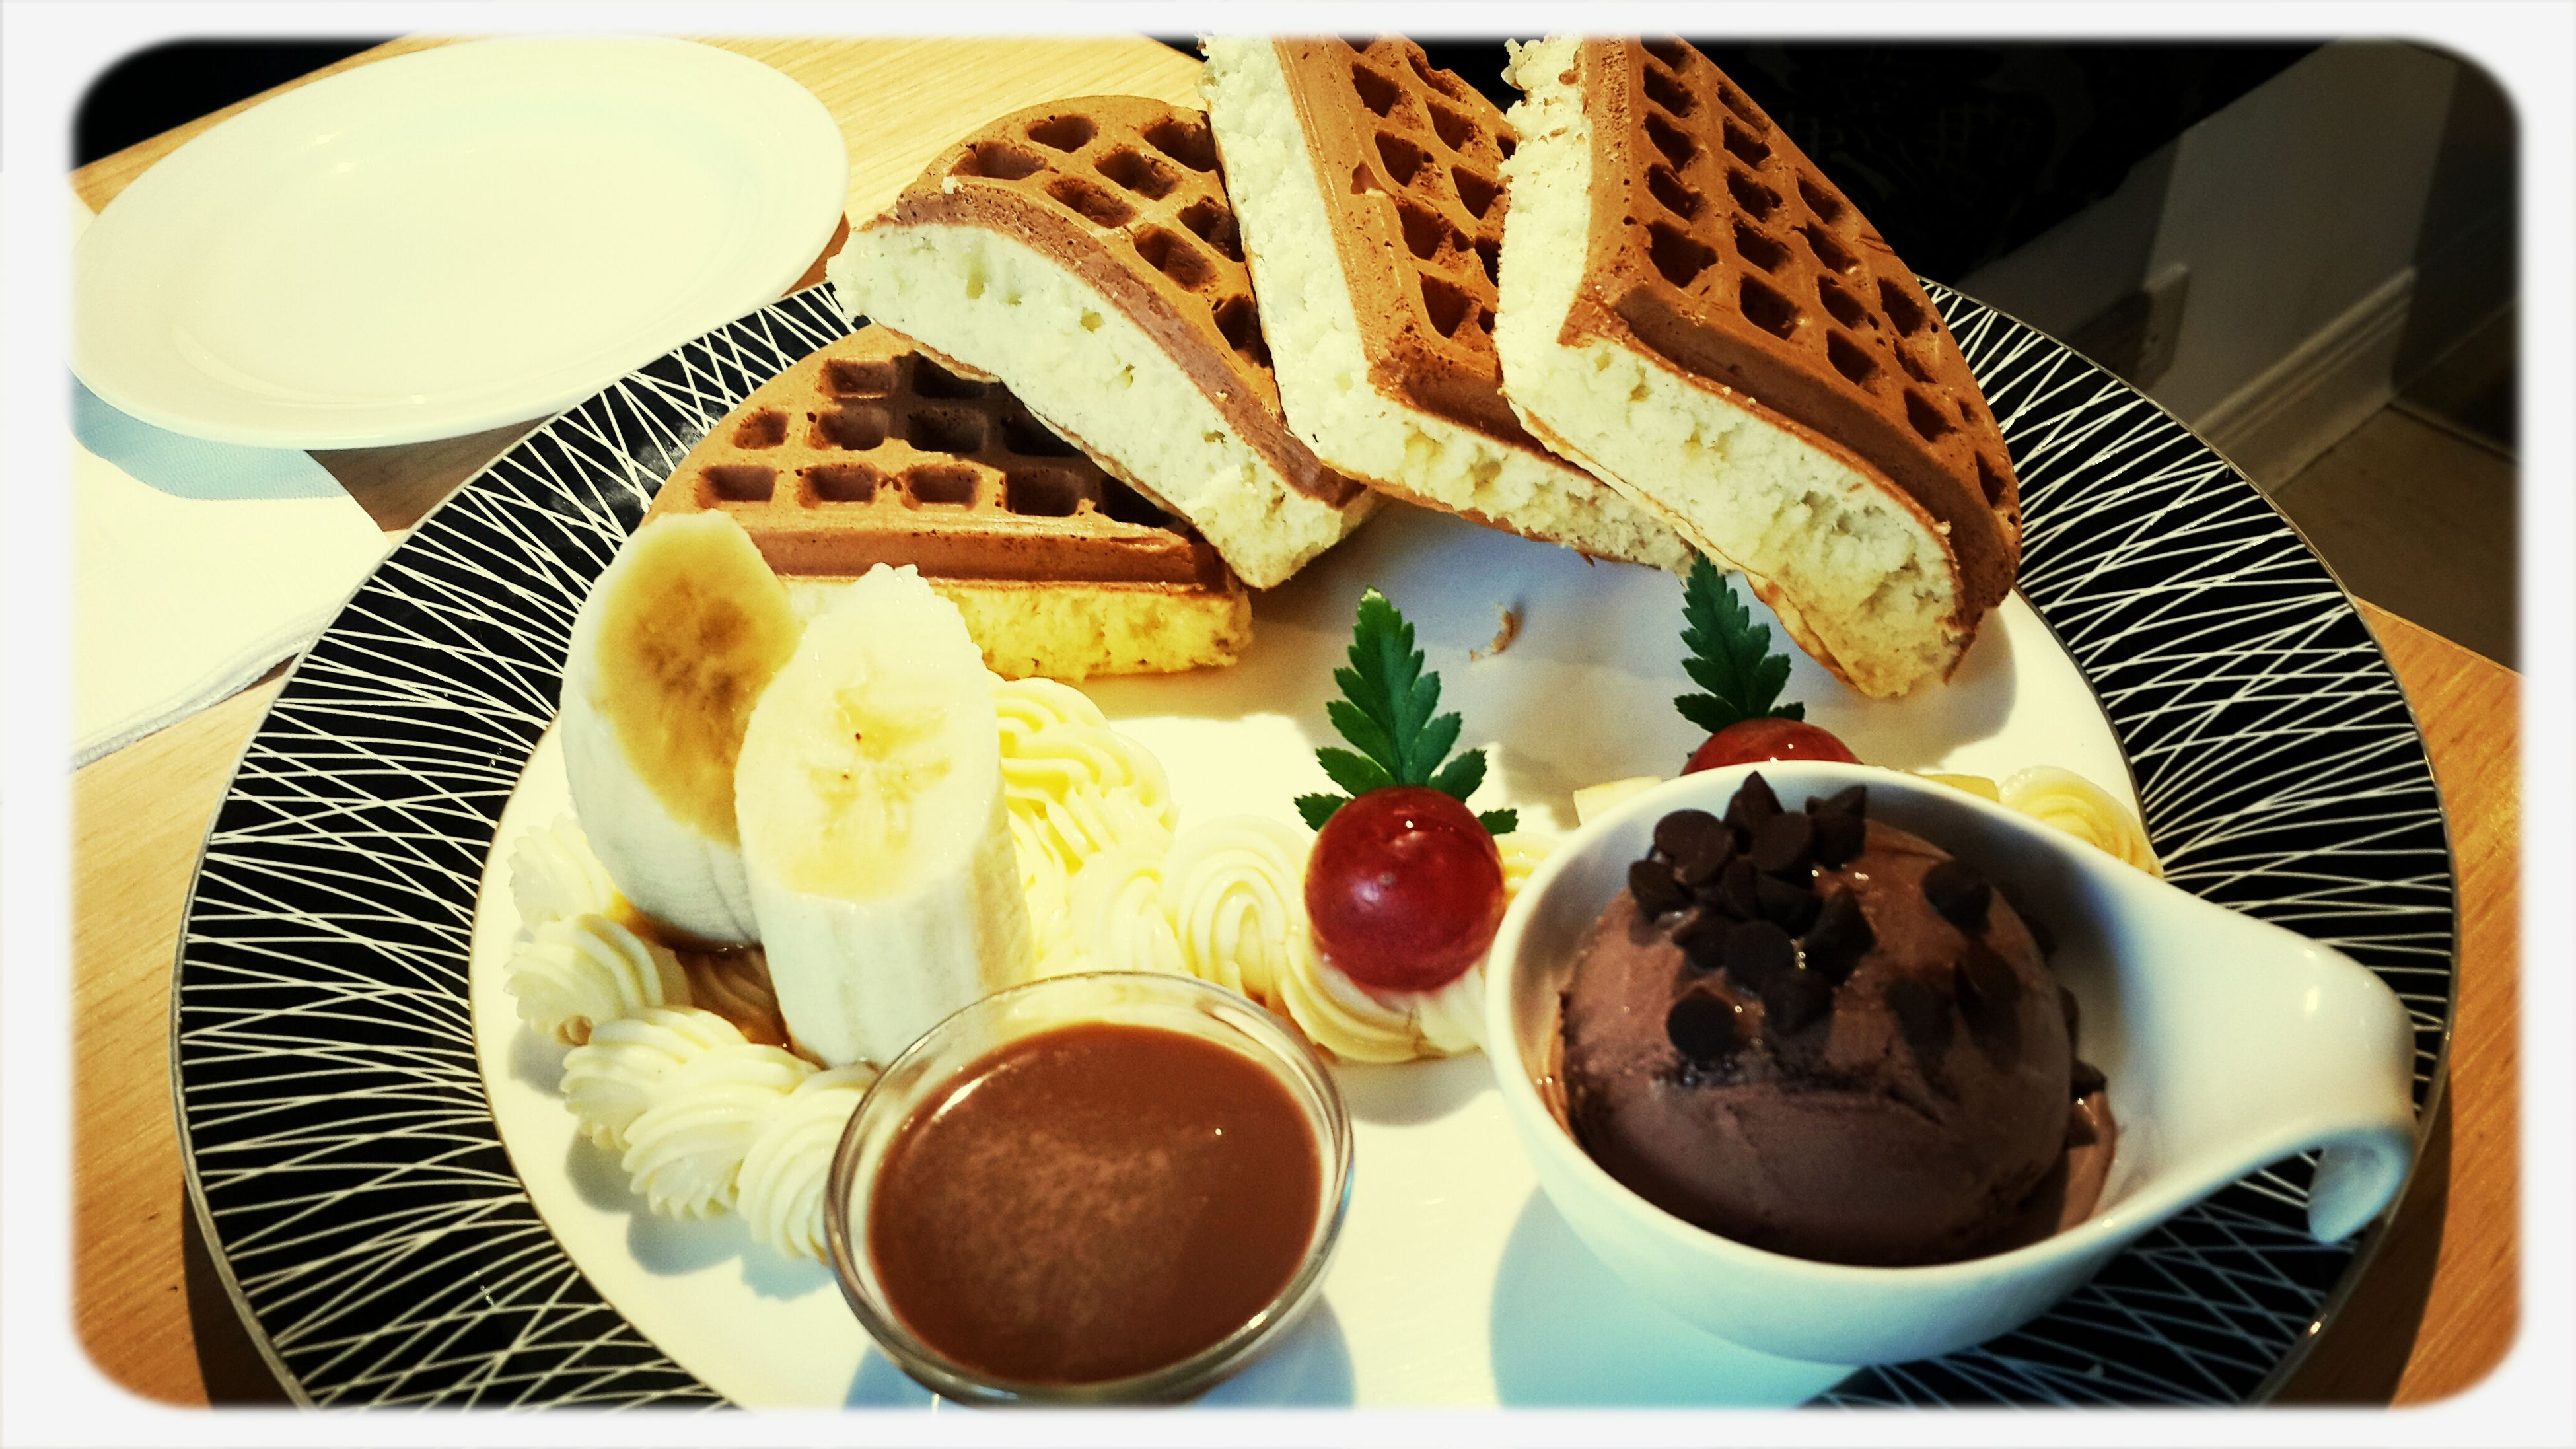 food and drink, food, indoors, plate, freshness, ready-to-eat, still life, sweet food, dessert, table, breakfast, indulgence, unhealthy eating, high angle view, serving size, transfer print, bread, bowl, close-up, temptation